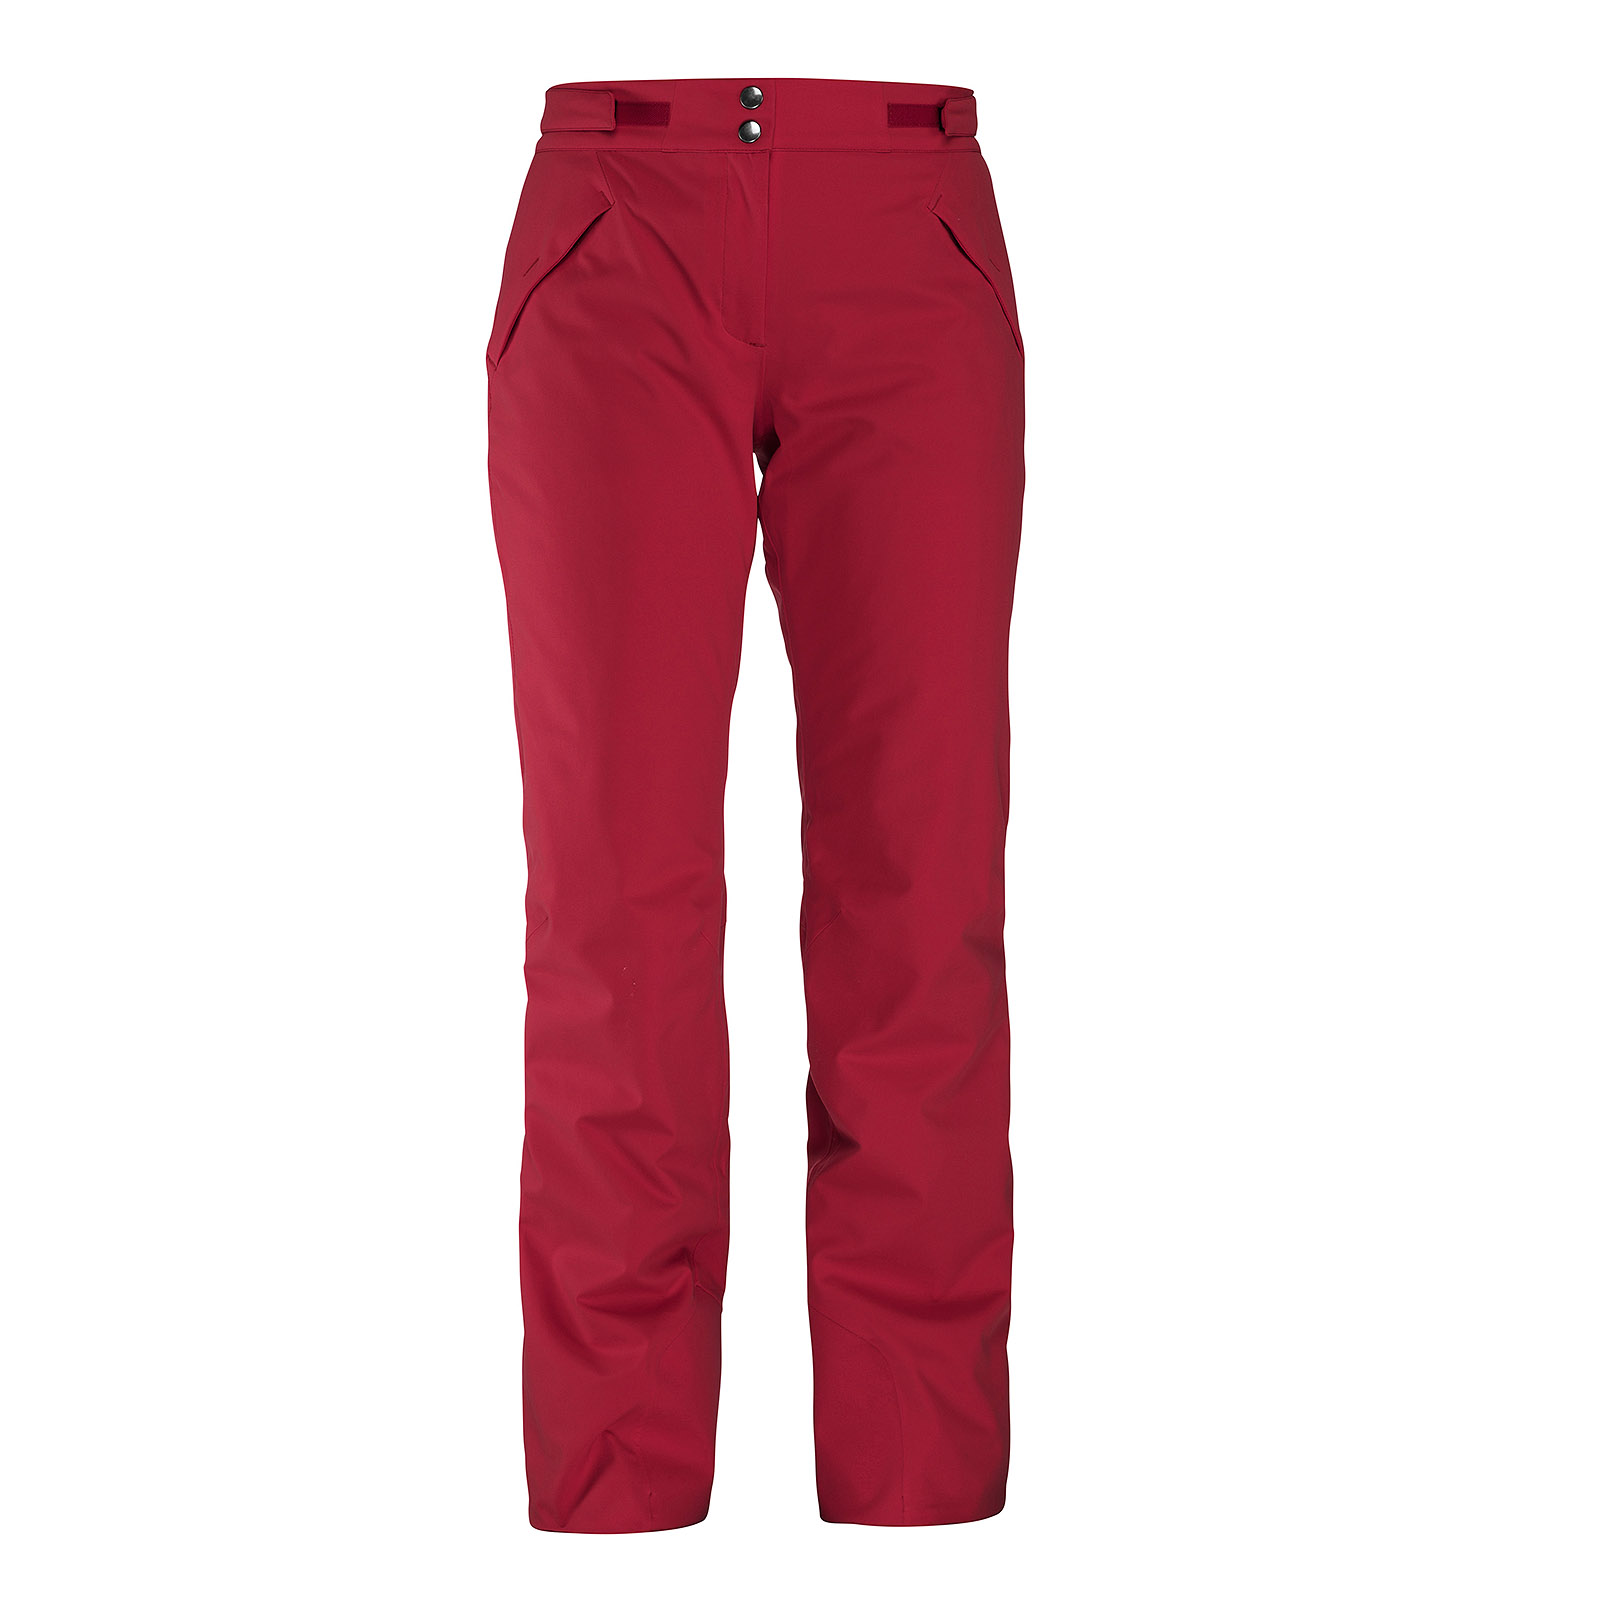 HEAD Sierra Pants W - (burgundy ) - 2019